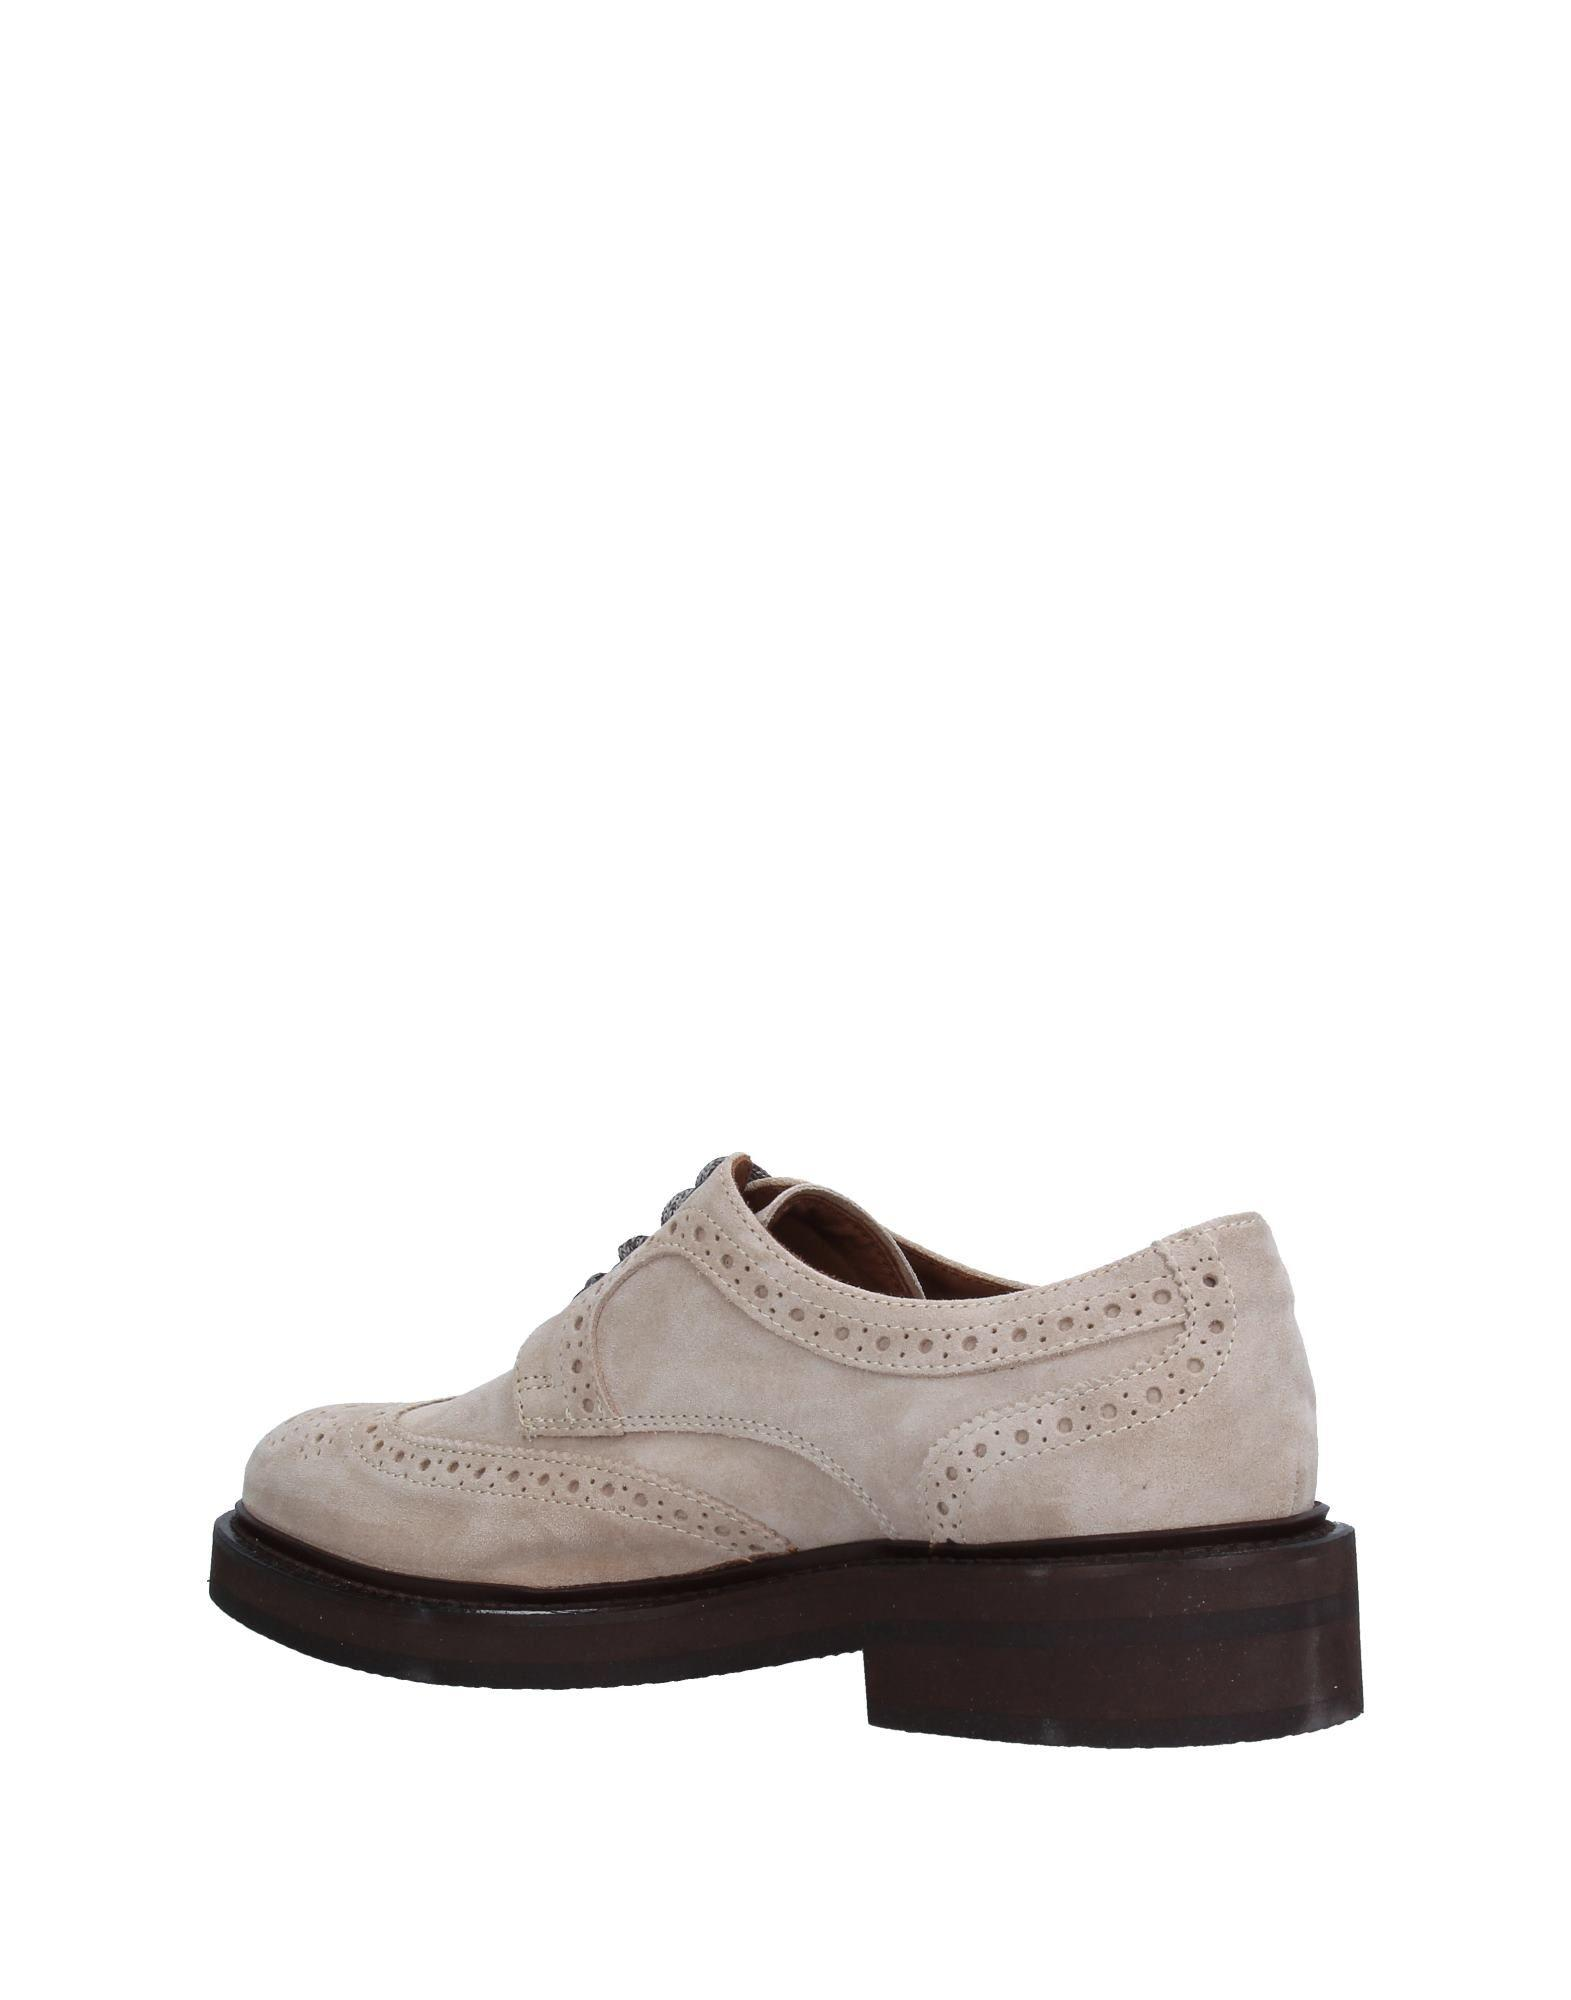 Eleventy Leather Lace-up Shoe in Beige (Natural) for Men